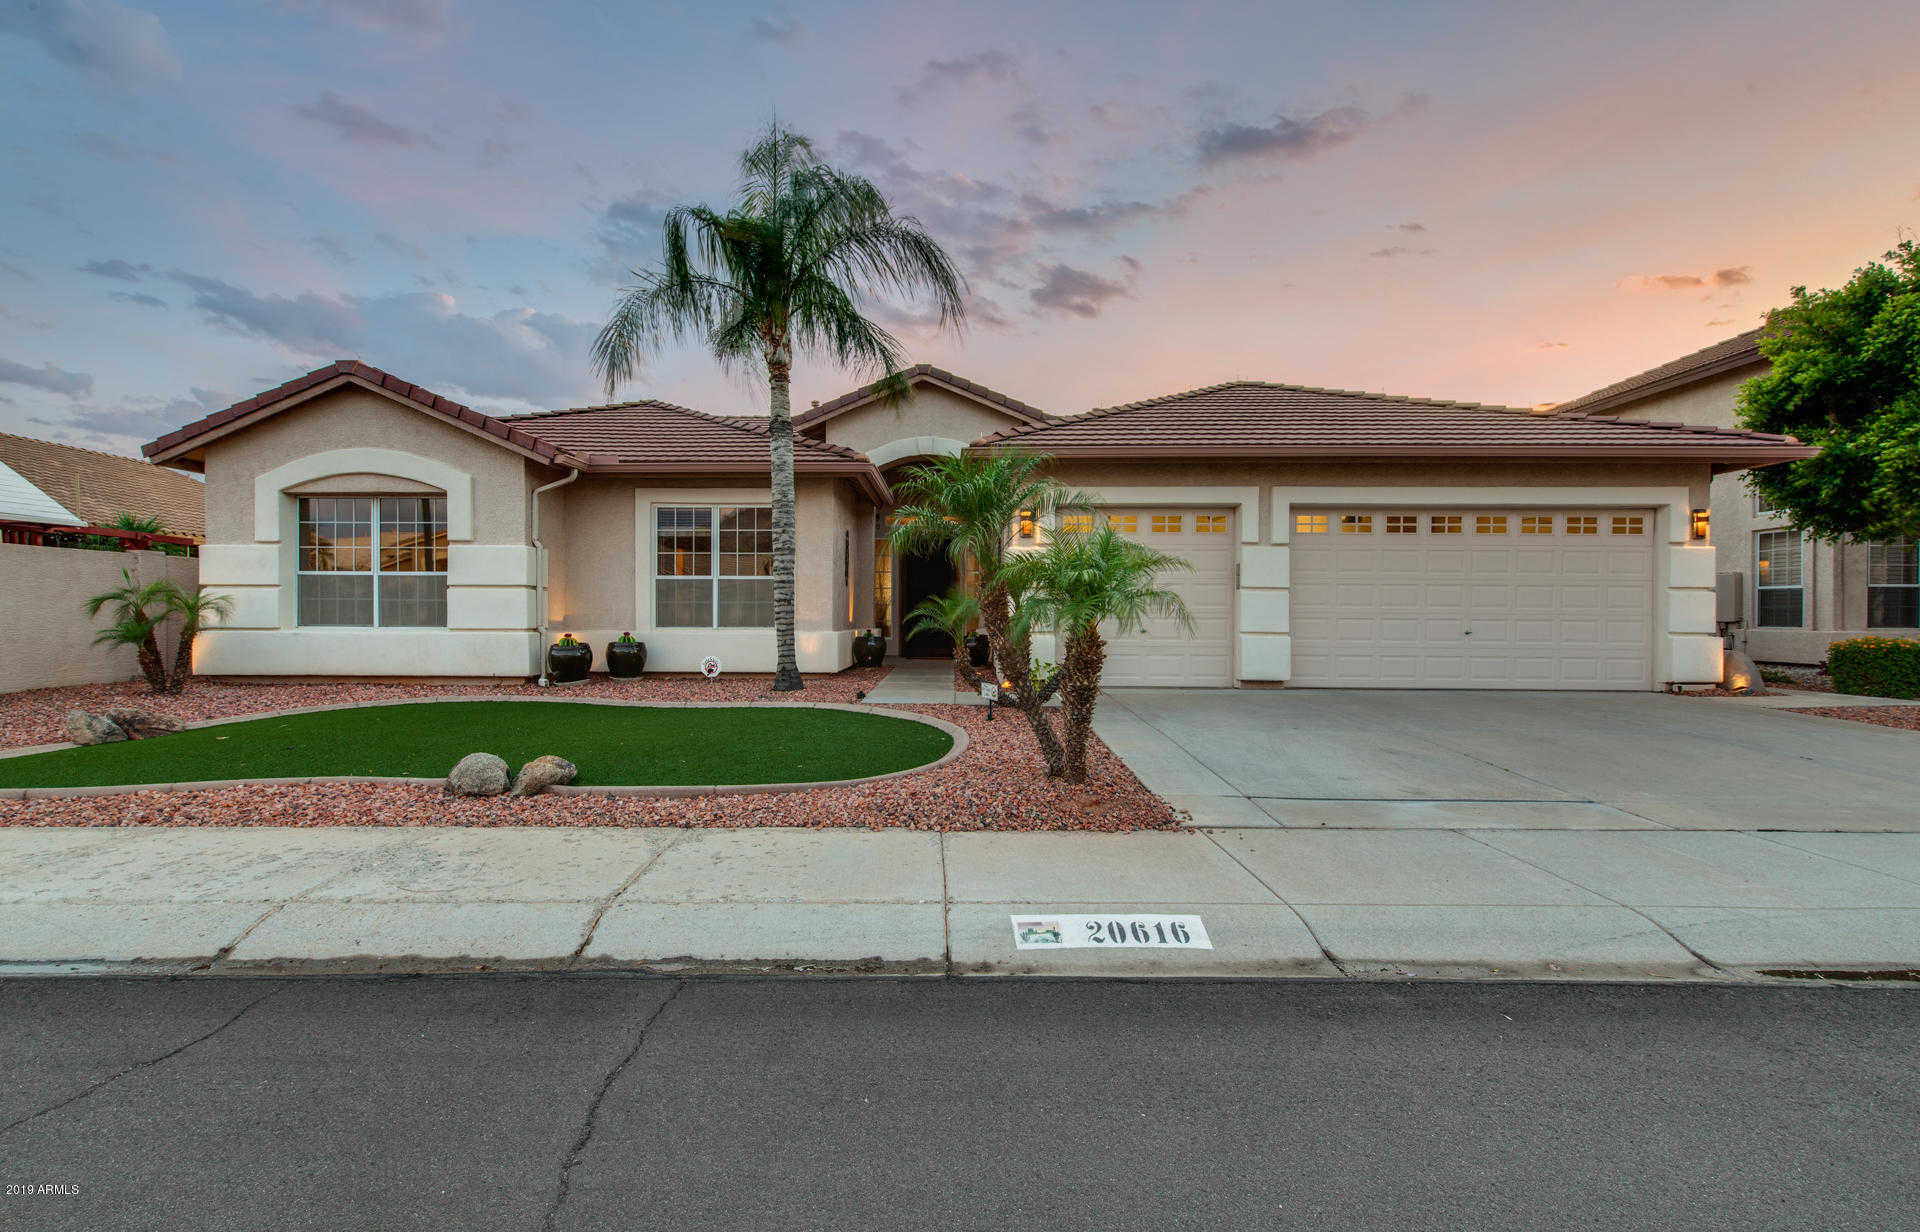 $570,000 - 4Br/3Ba - Home for Sale in Arrowhead Lakes, Glendale